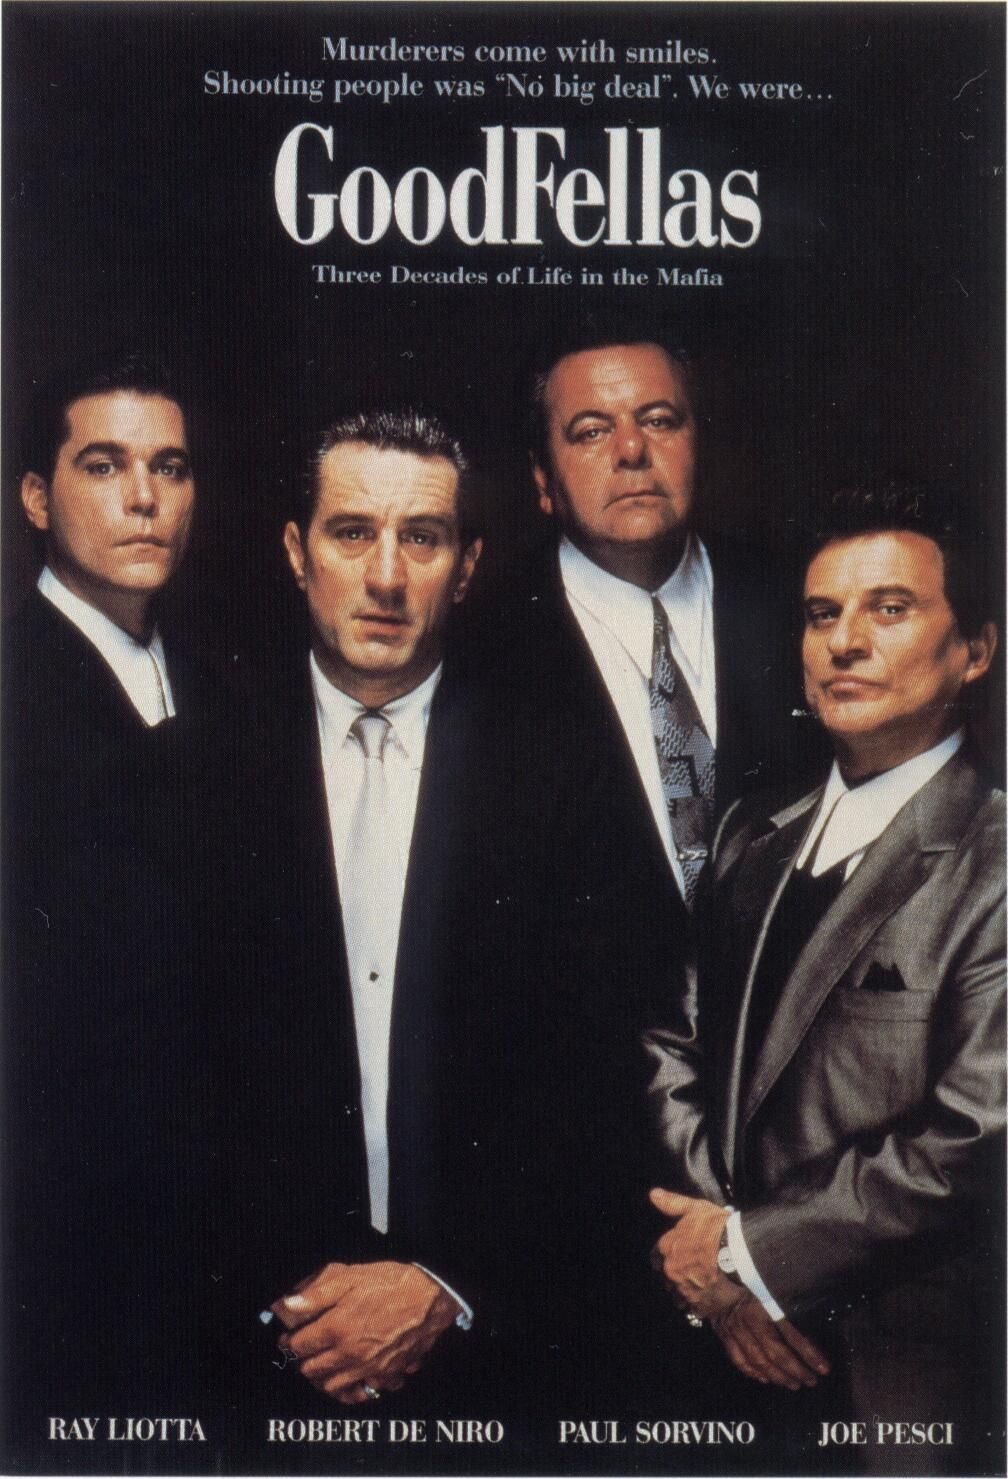 Goodfellas 1990 | Gangster movies, Goodfellas, Goodfellas ...